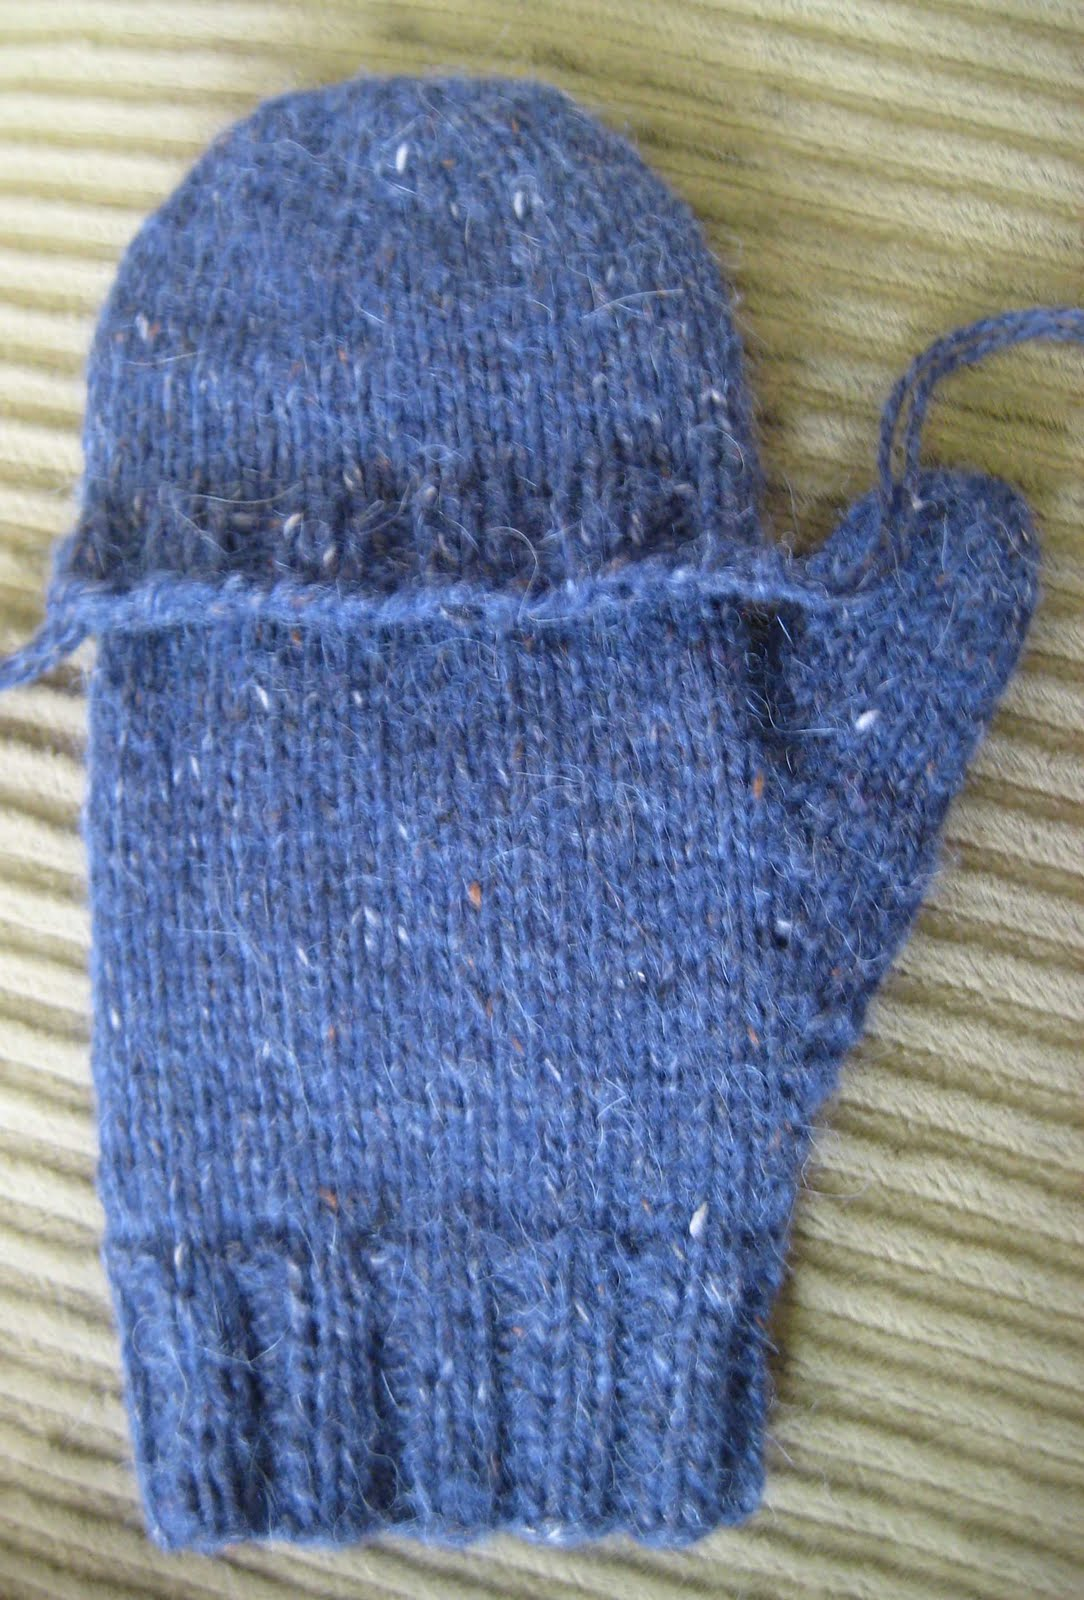 ChemKnits: Convertible Fenway Mitts (Convertible Mittens)